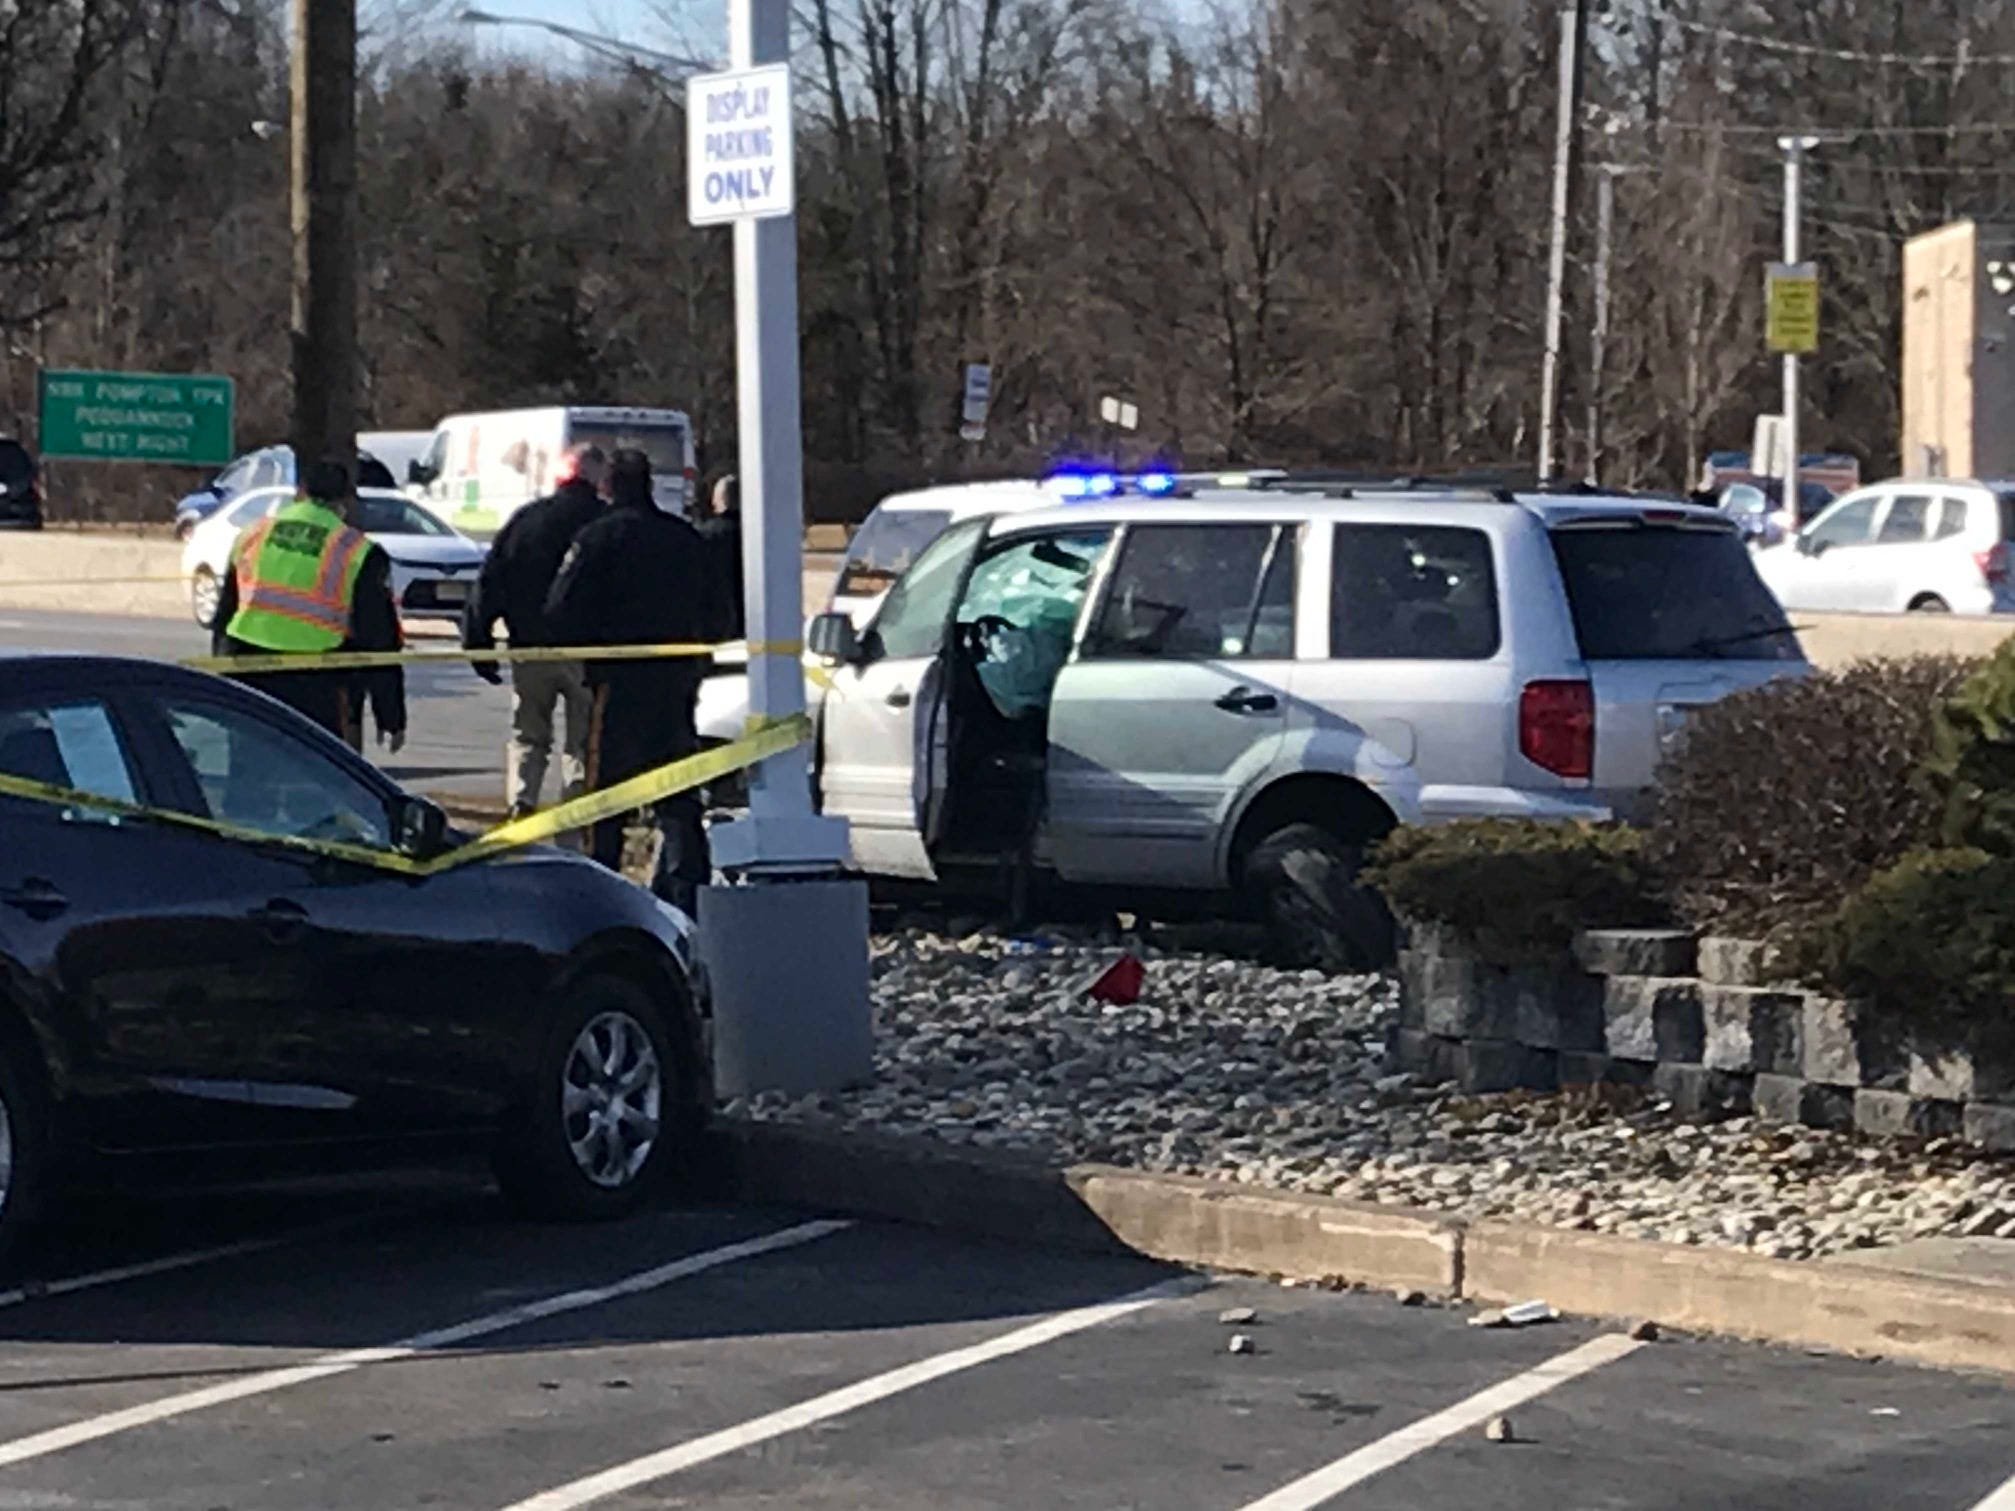 The airbag deployed on one of the vehicles involved in a serious collision on Route 23 in Wayne.